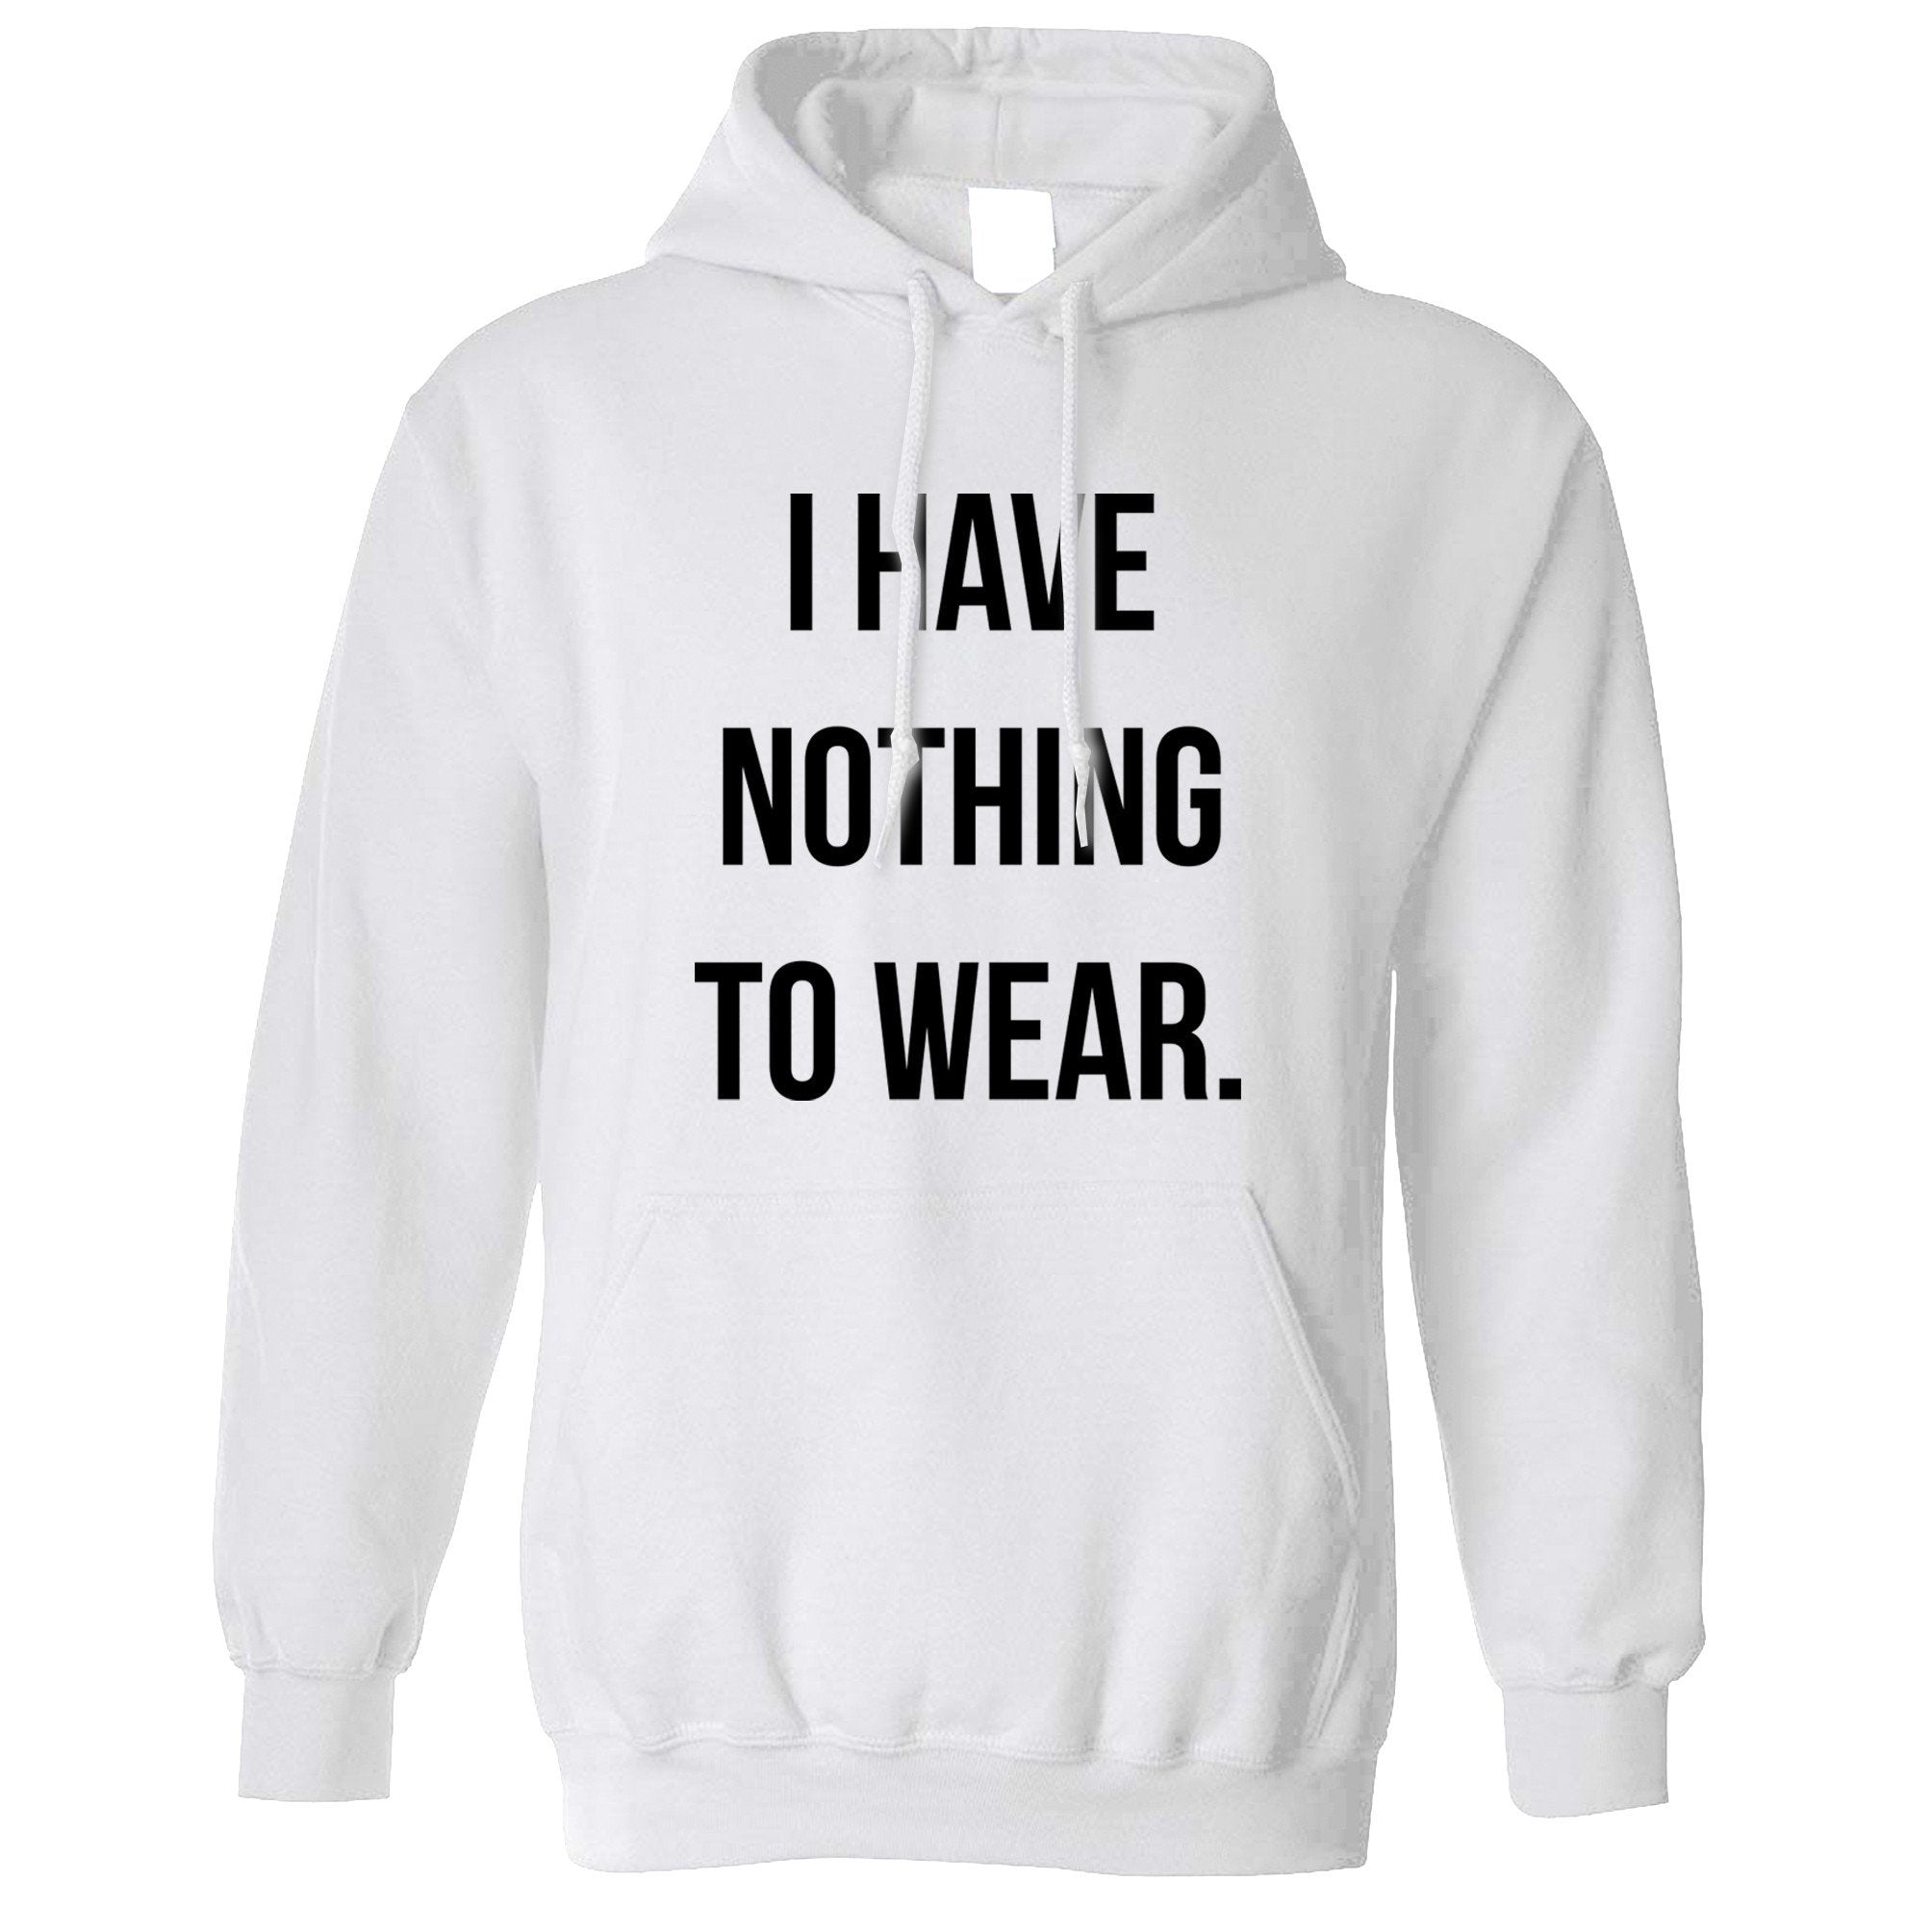 Novelty Slogan Hoodie I Have Nothing To Wear. Hooded Jumper